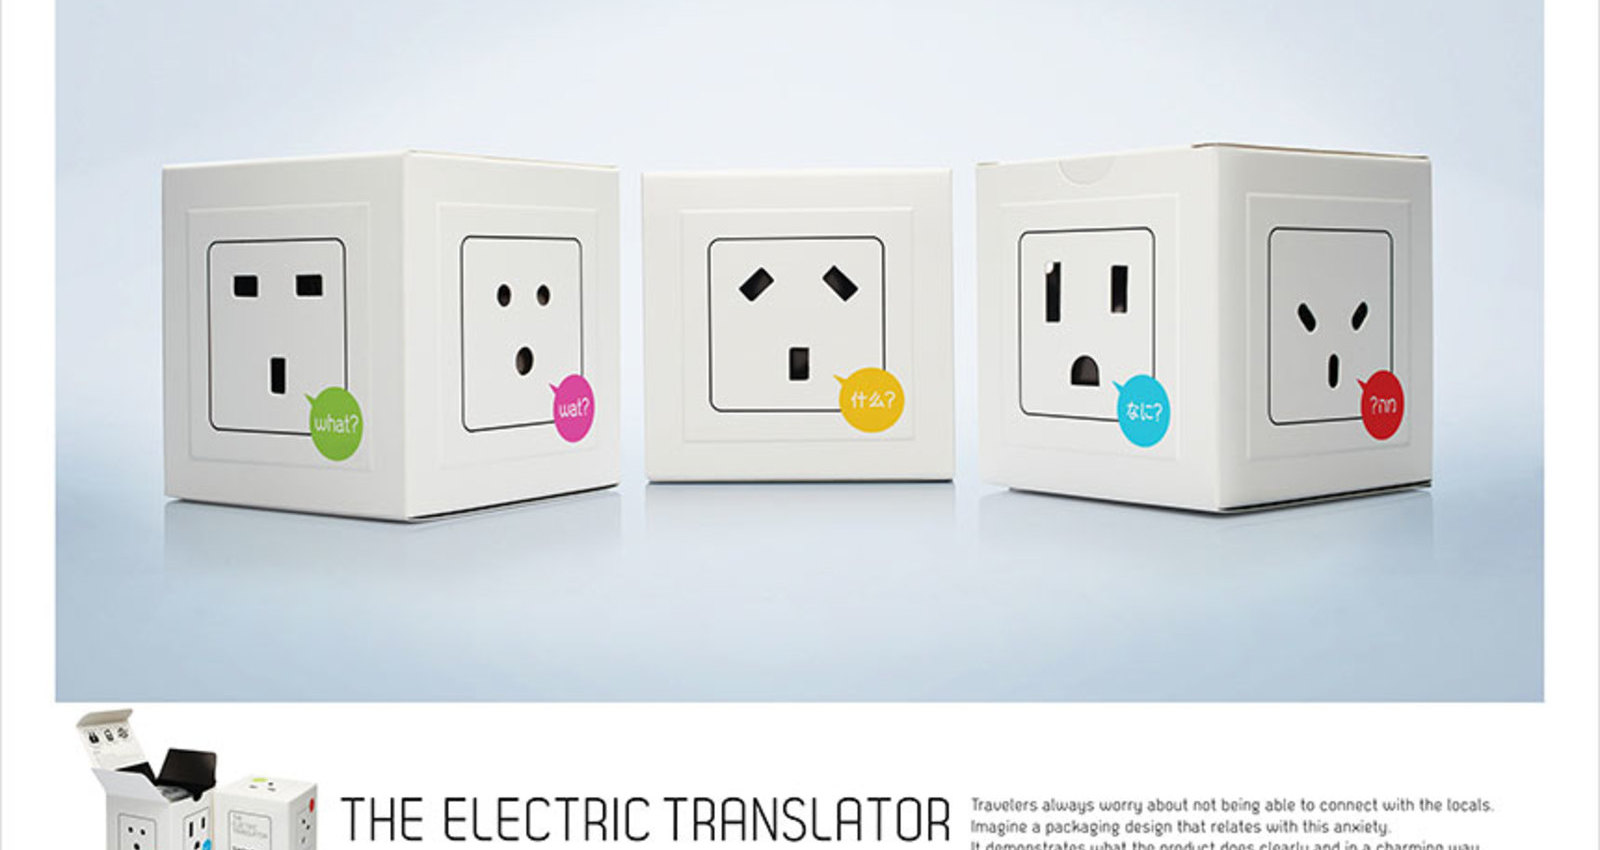 The Electric Translator